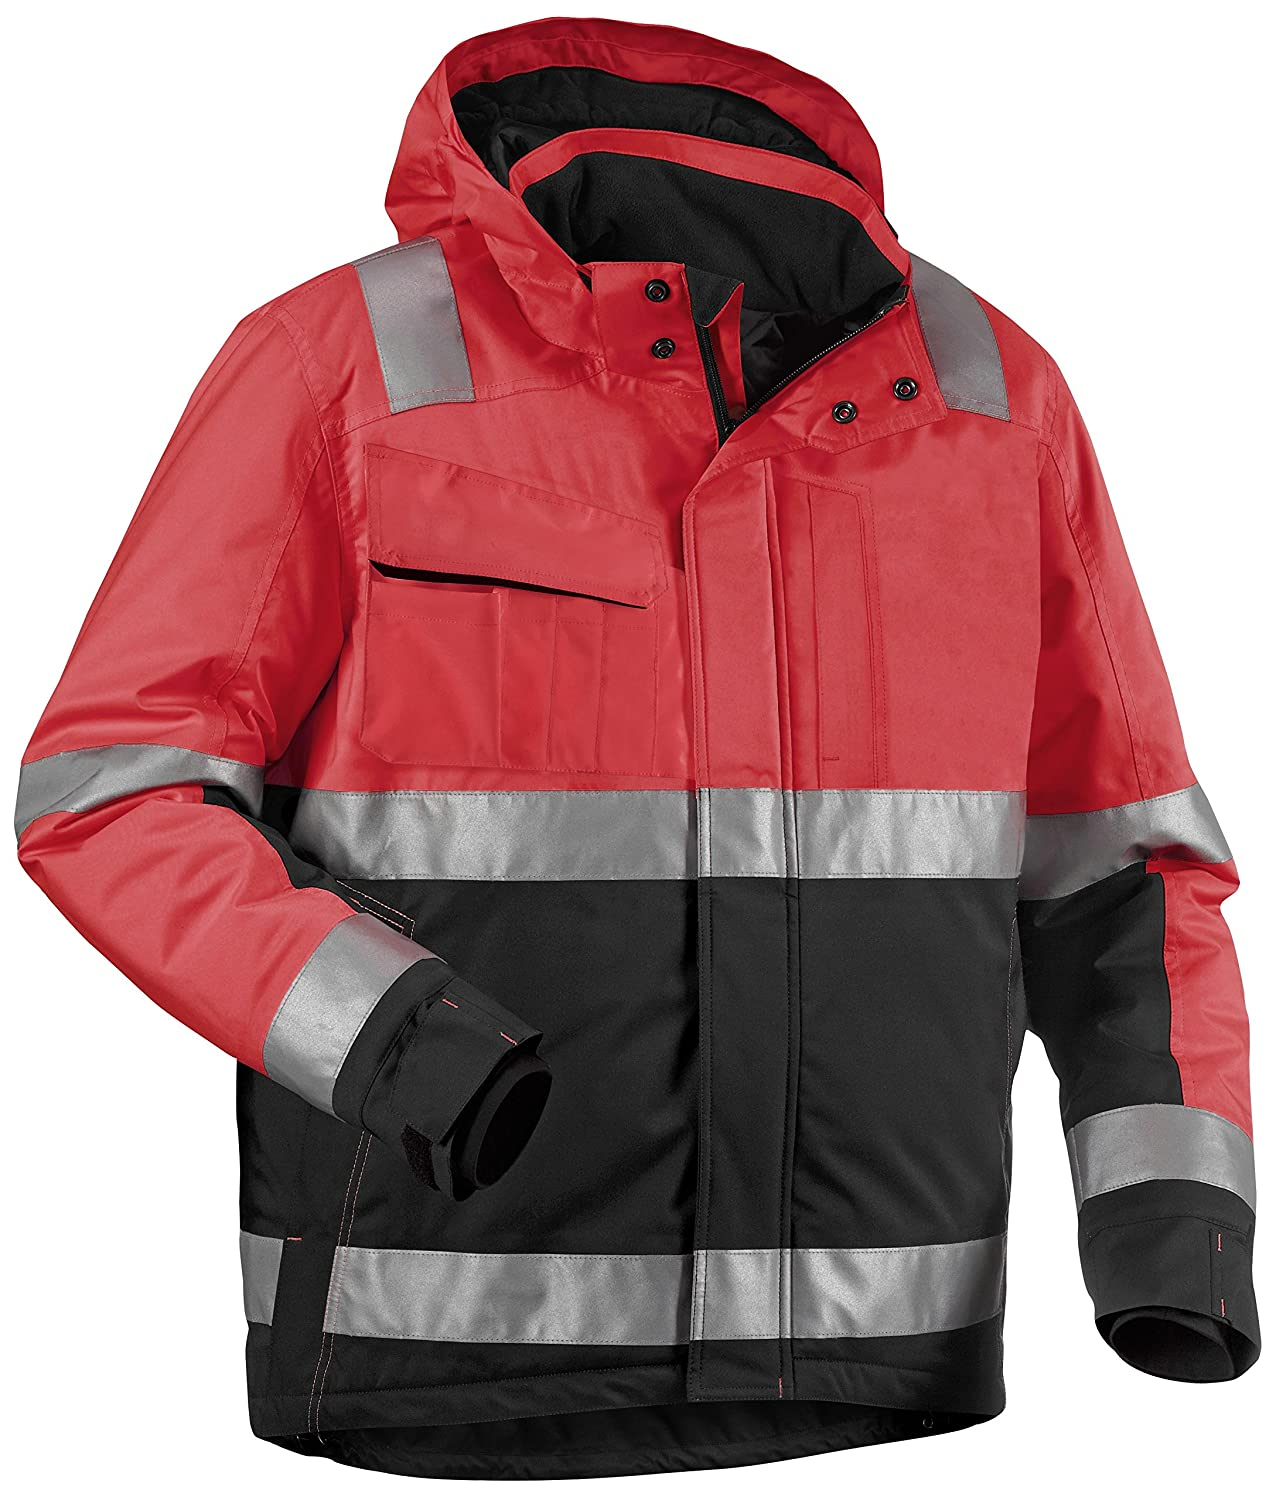 Blakläder High Vis Winter Bundjacke Kl. 3 High Vis Rot/Schwarz, 4870 1977 5599, Gr. 4XL